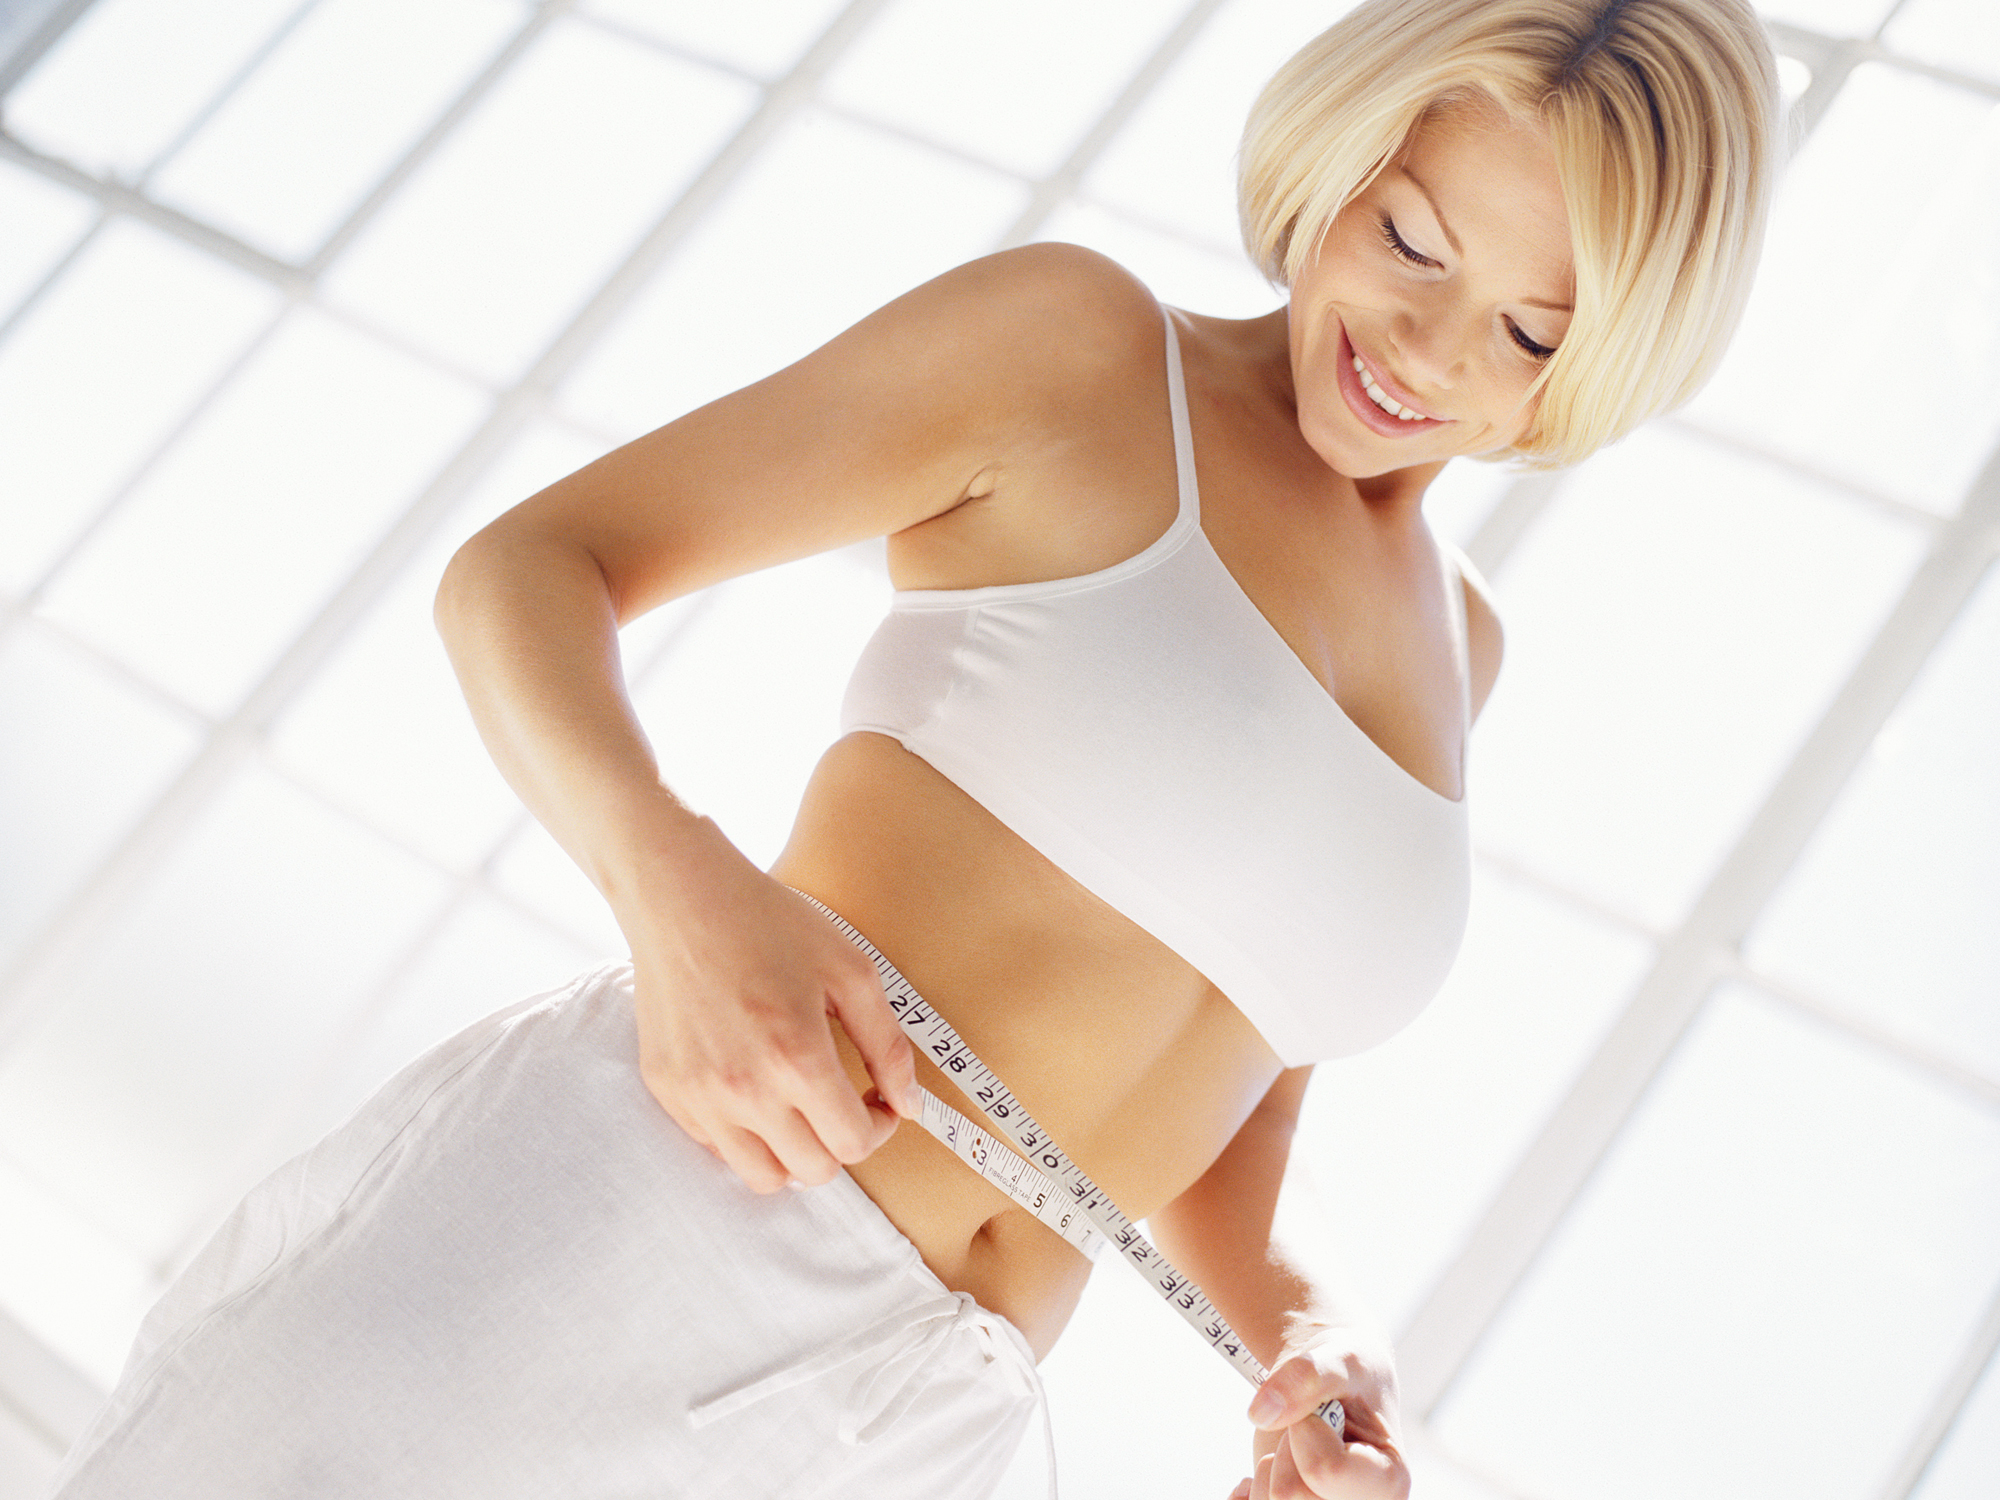 3 simple ways to shed pounds without changing your diet